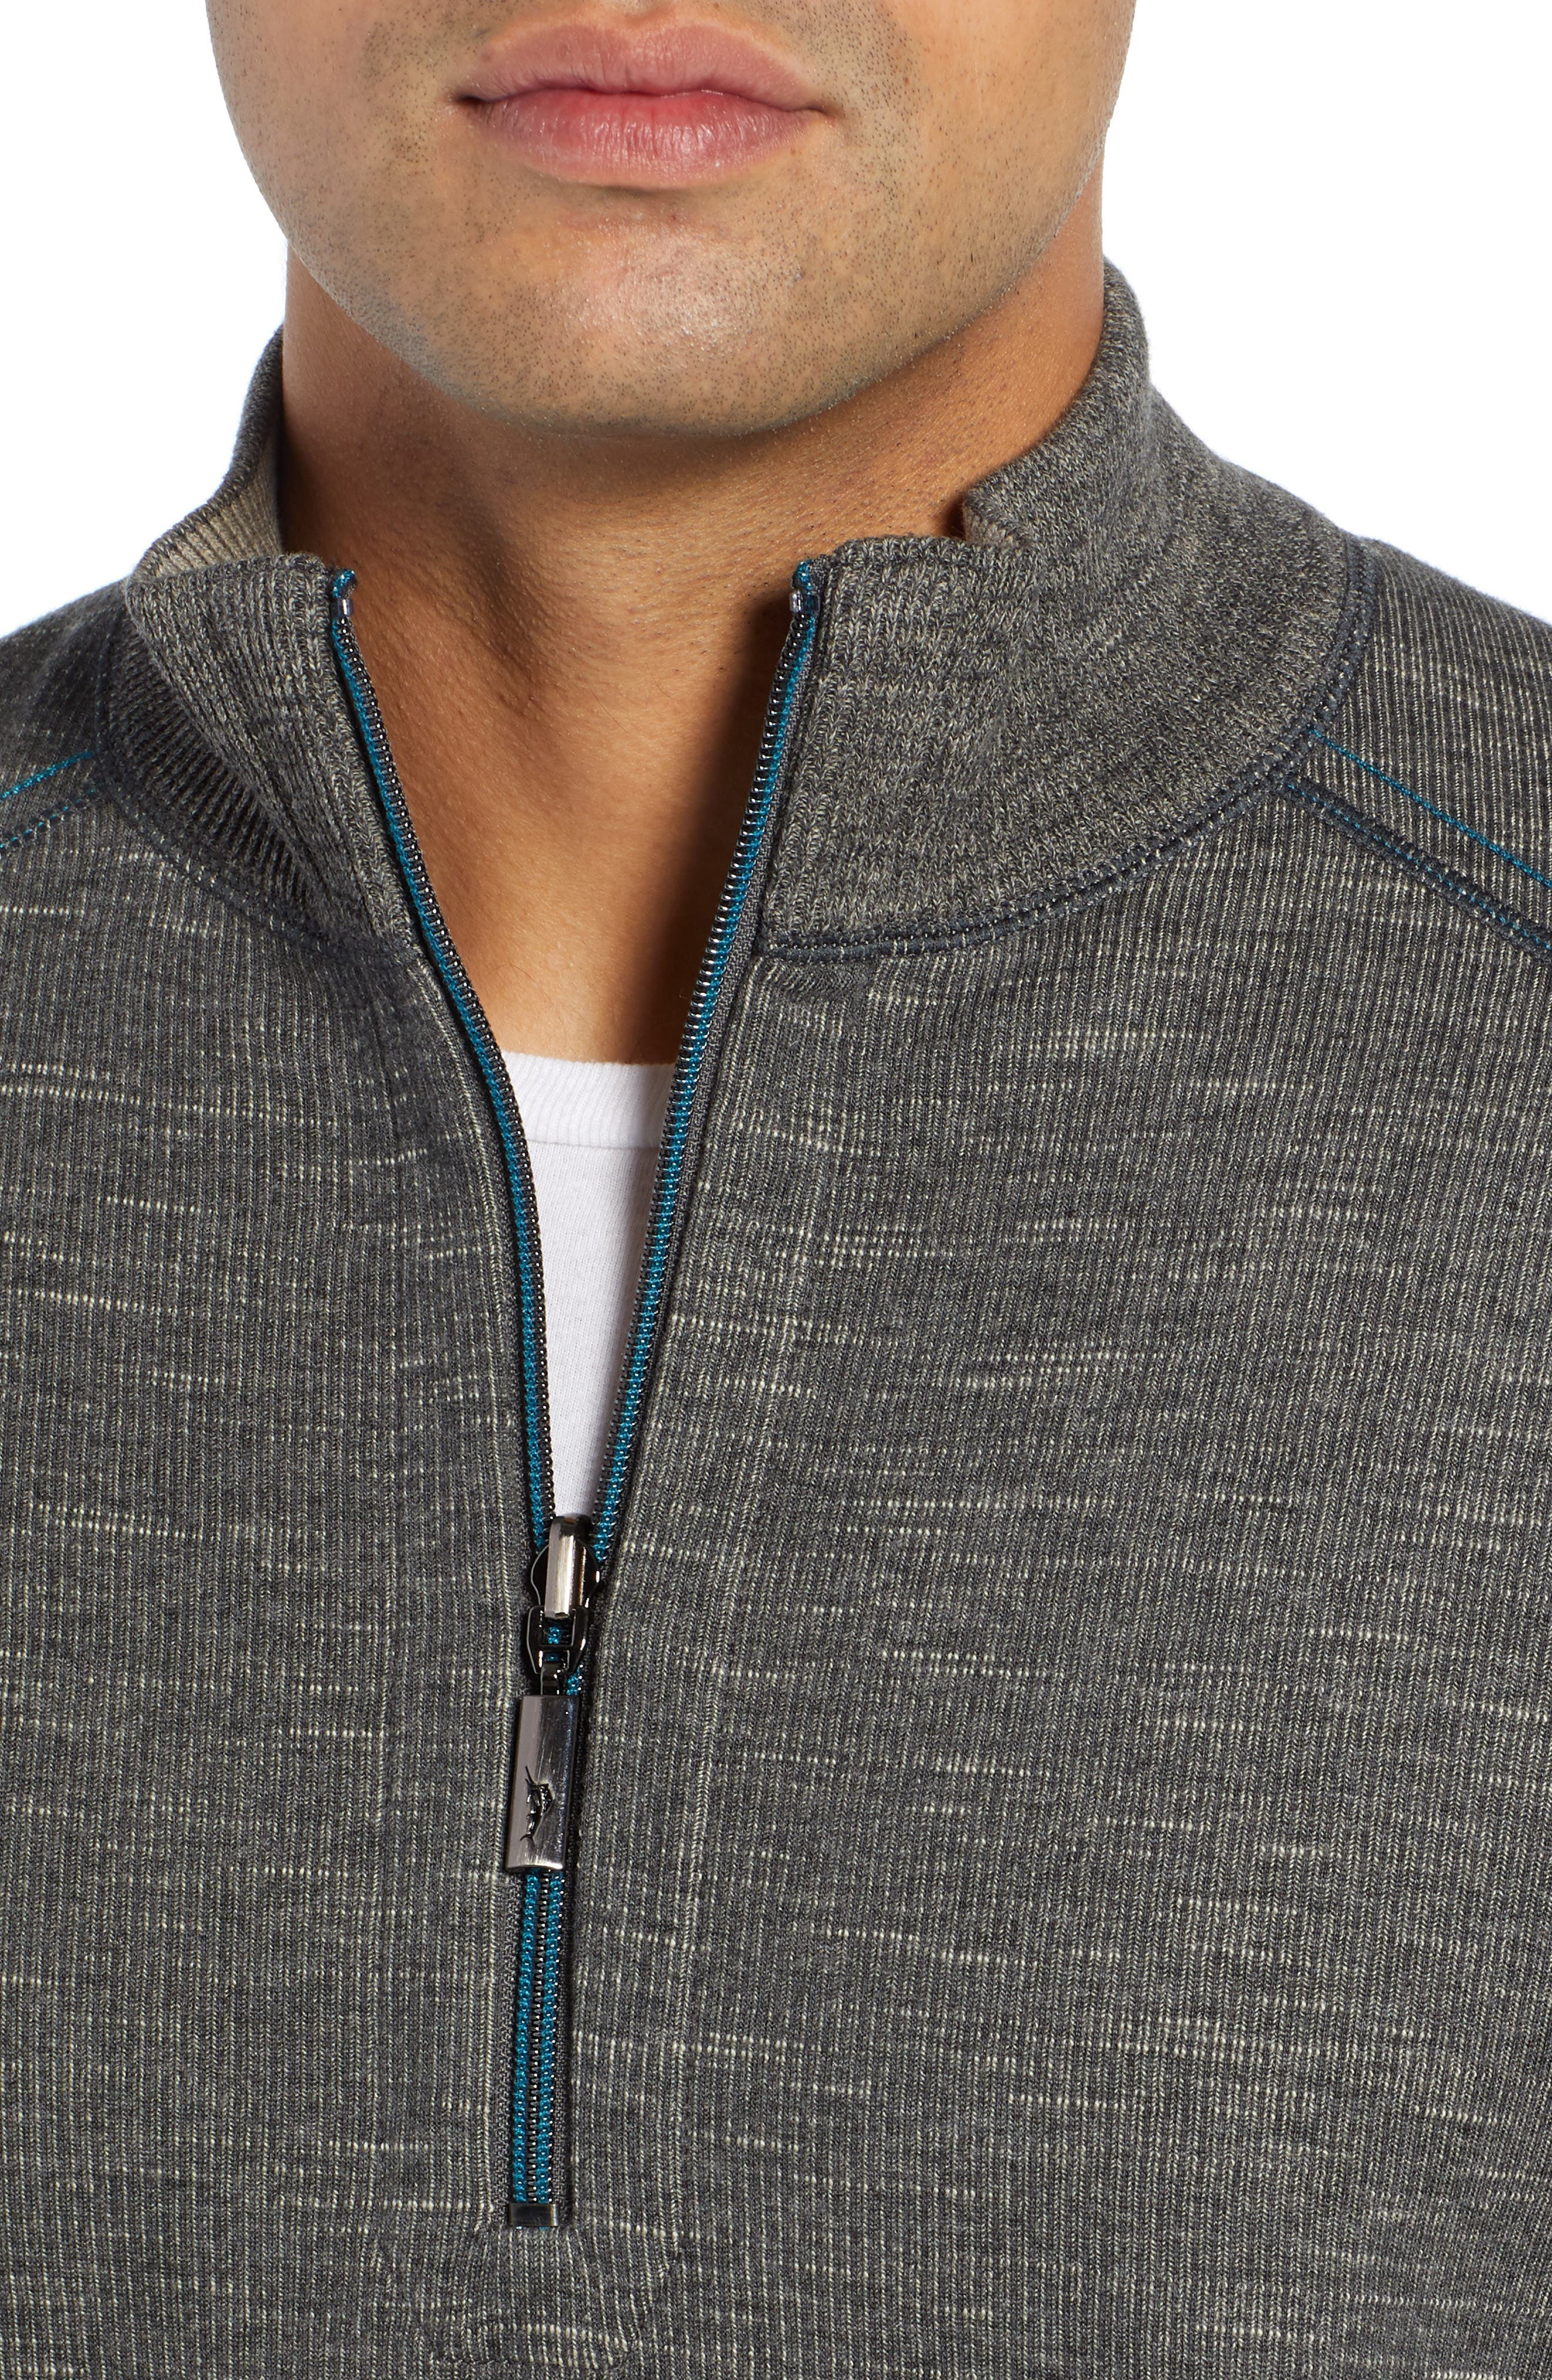 Flipsider Reversible Quarter-Zip Pullover,                             Alternate thumbnail 5, color,                             ONYX HEATHER